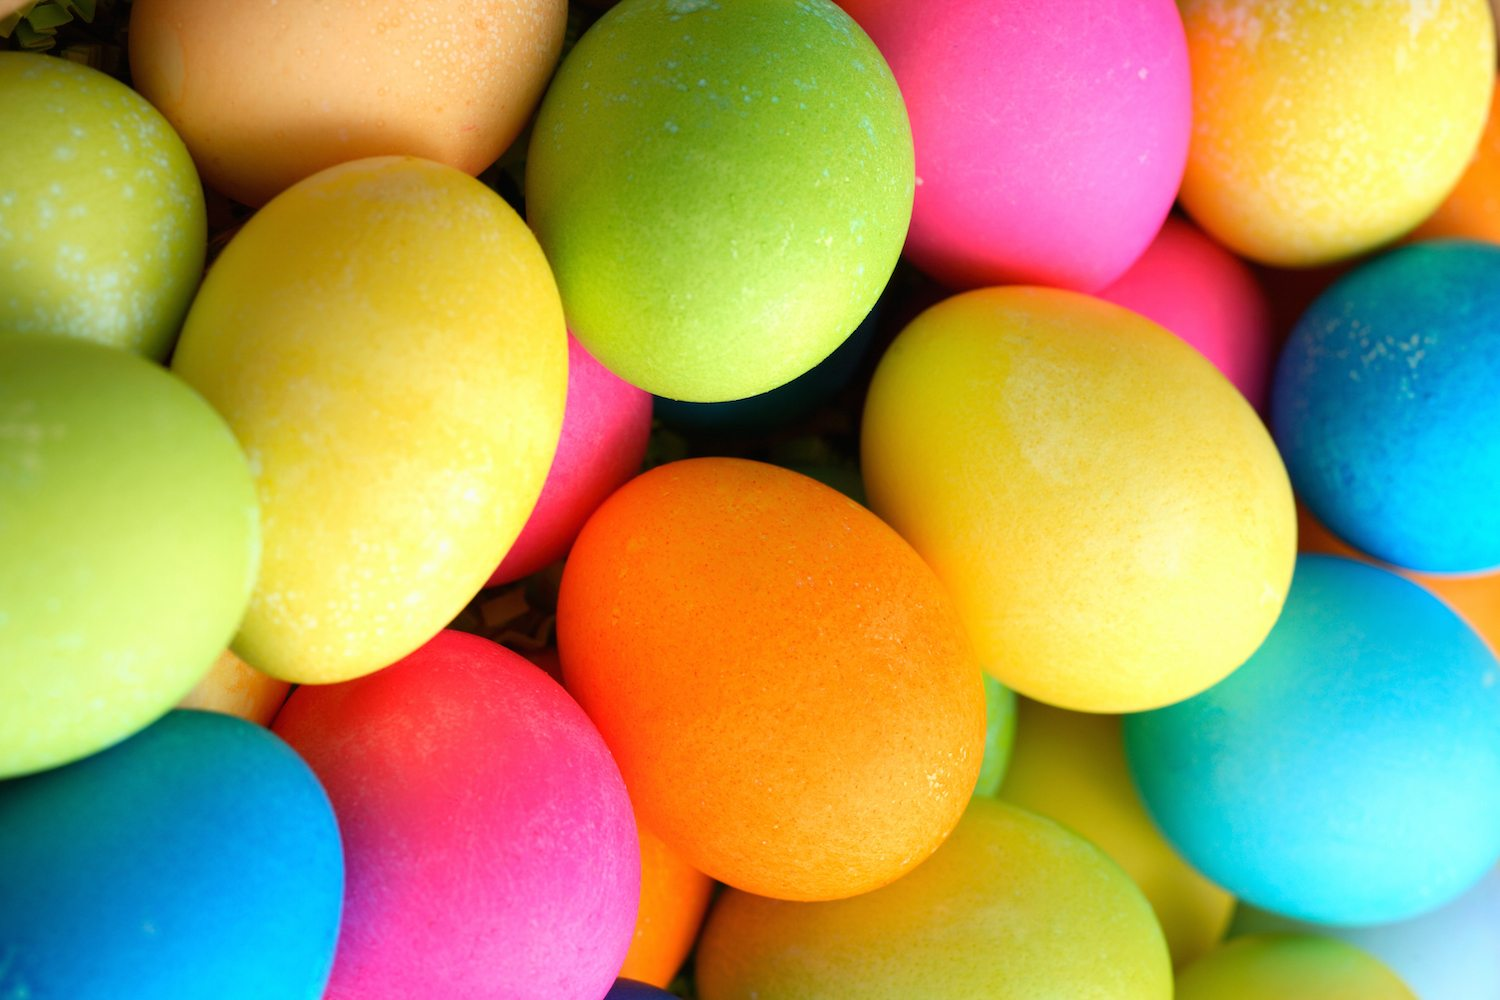 20 Egg-cellent Easter Foods